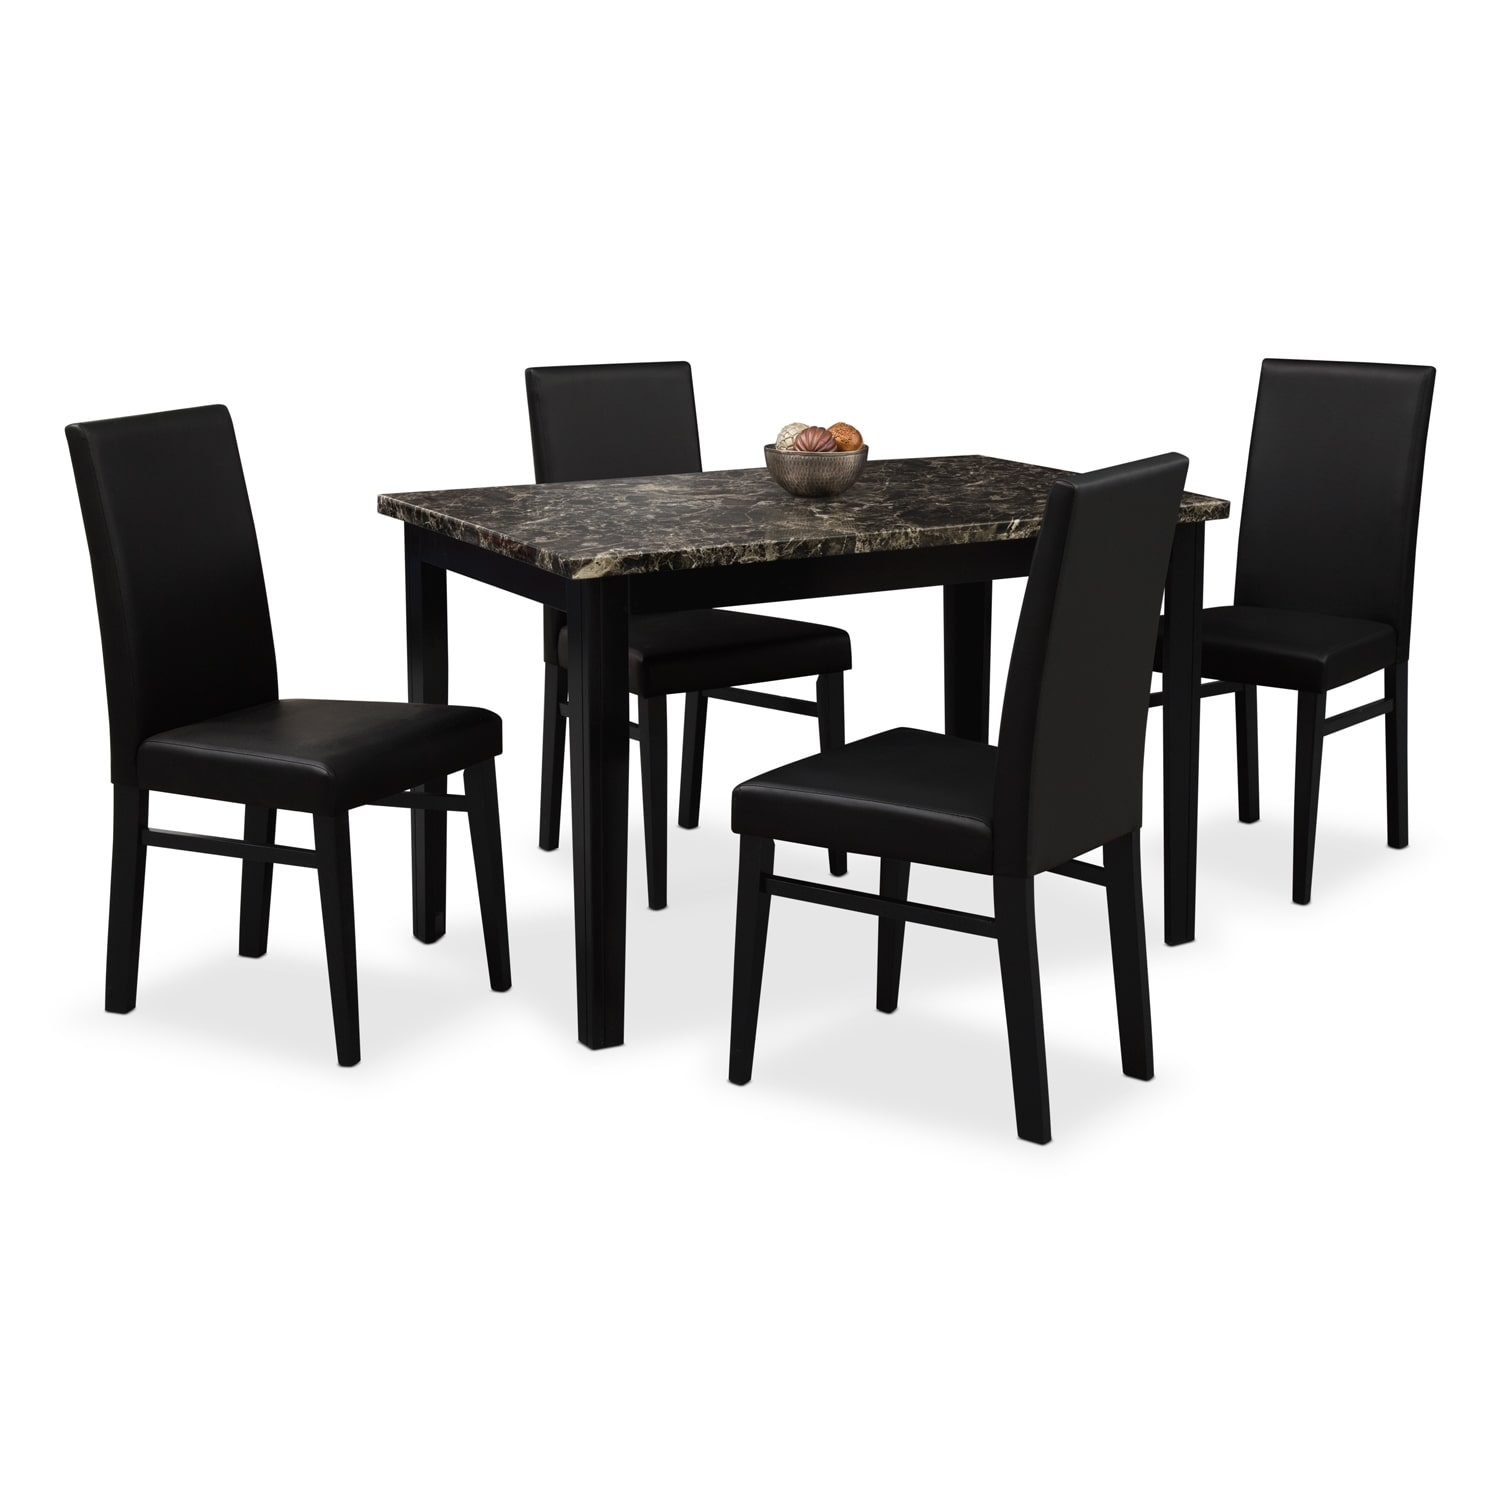 shadow table and 4 chairs black